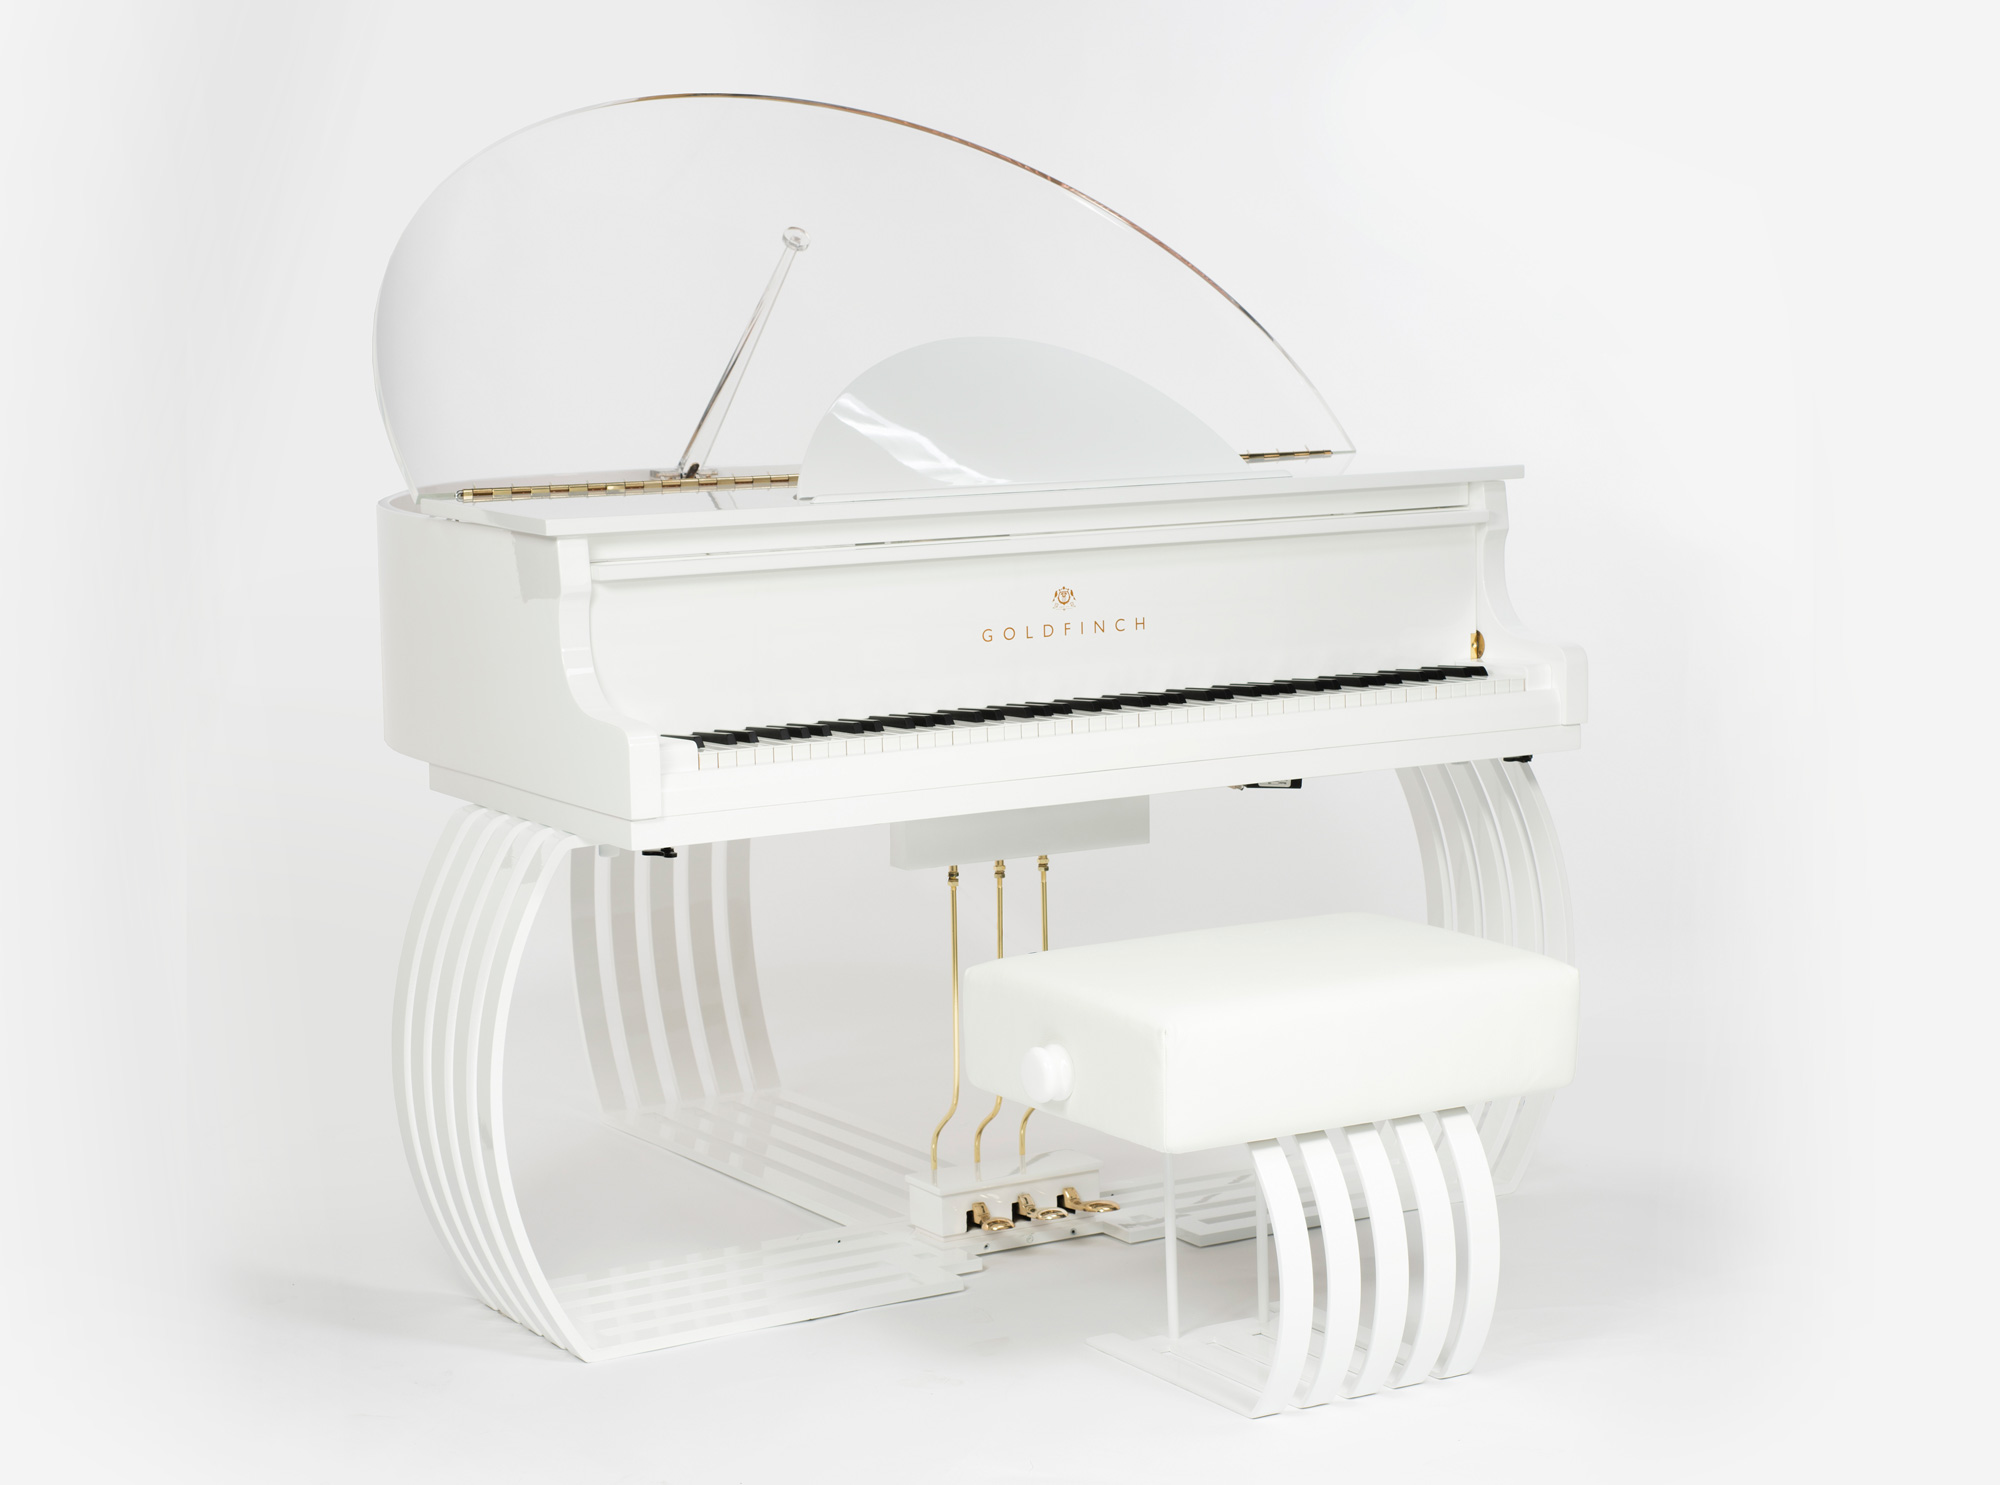 Goldfinch Launches Sygnet Grand Piano For Superyachts With Northrop & Johnson